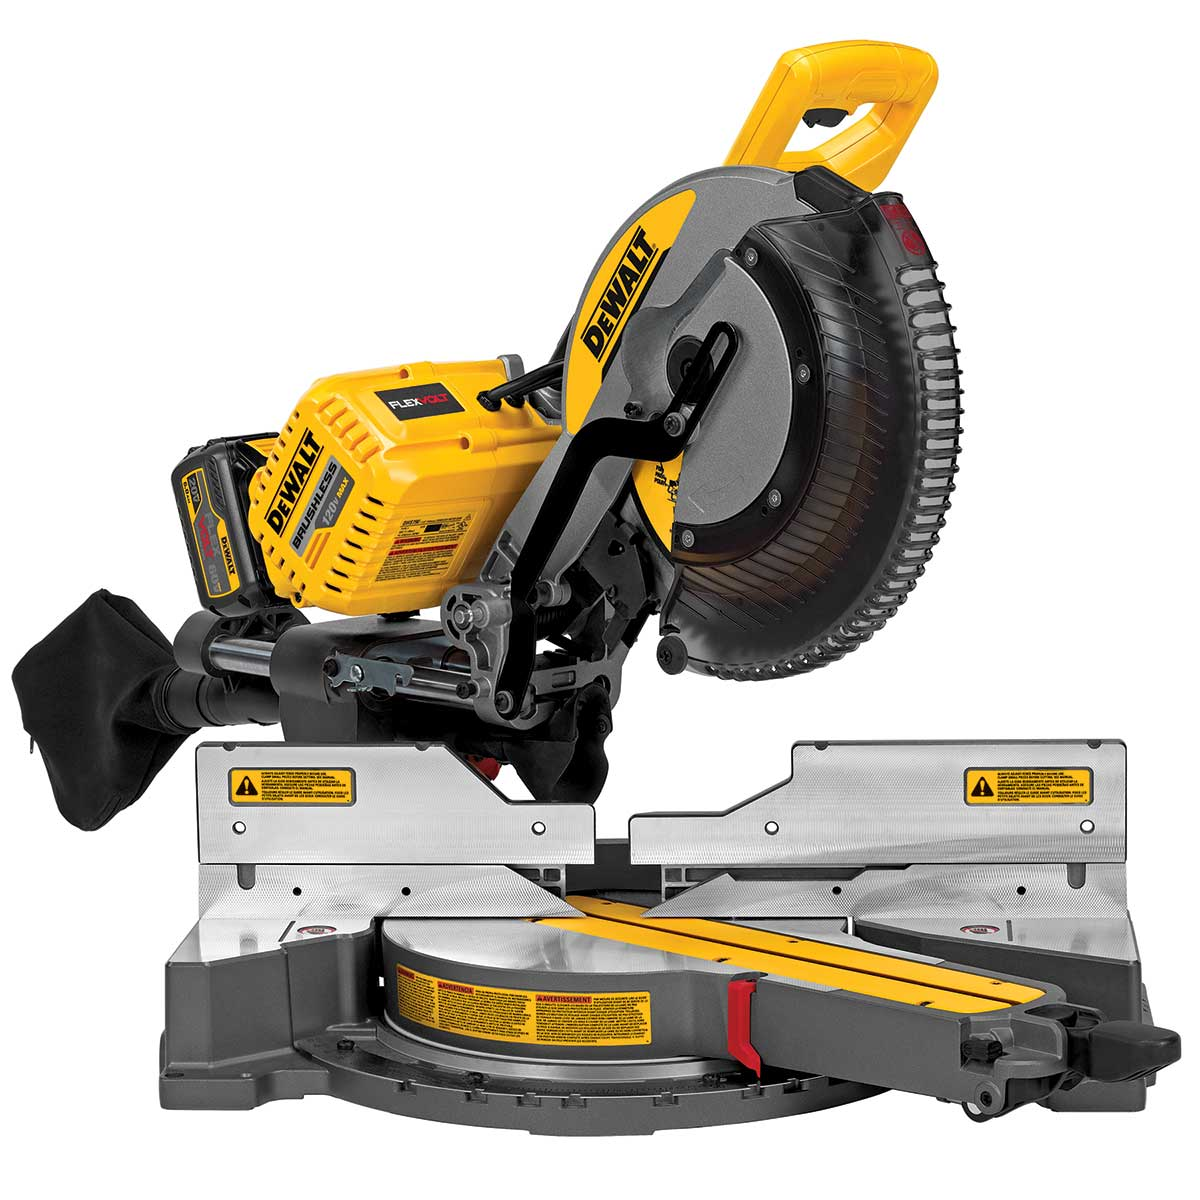 DeWalt FLEXVOLT 12In 120V MAX* Double Bevel Compound Sliding Miter Saw Kit with Cutline™ Blade Positioning System System